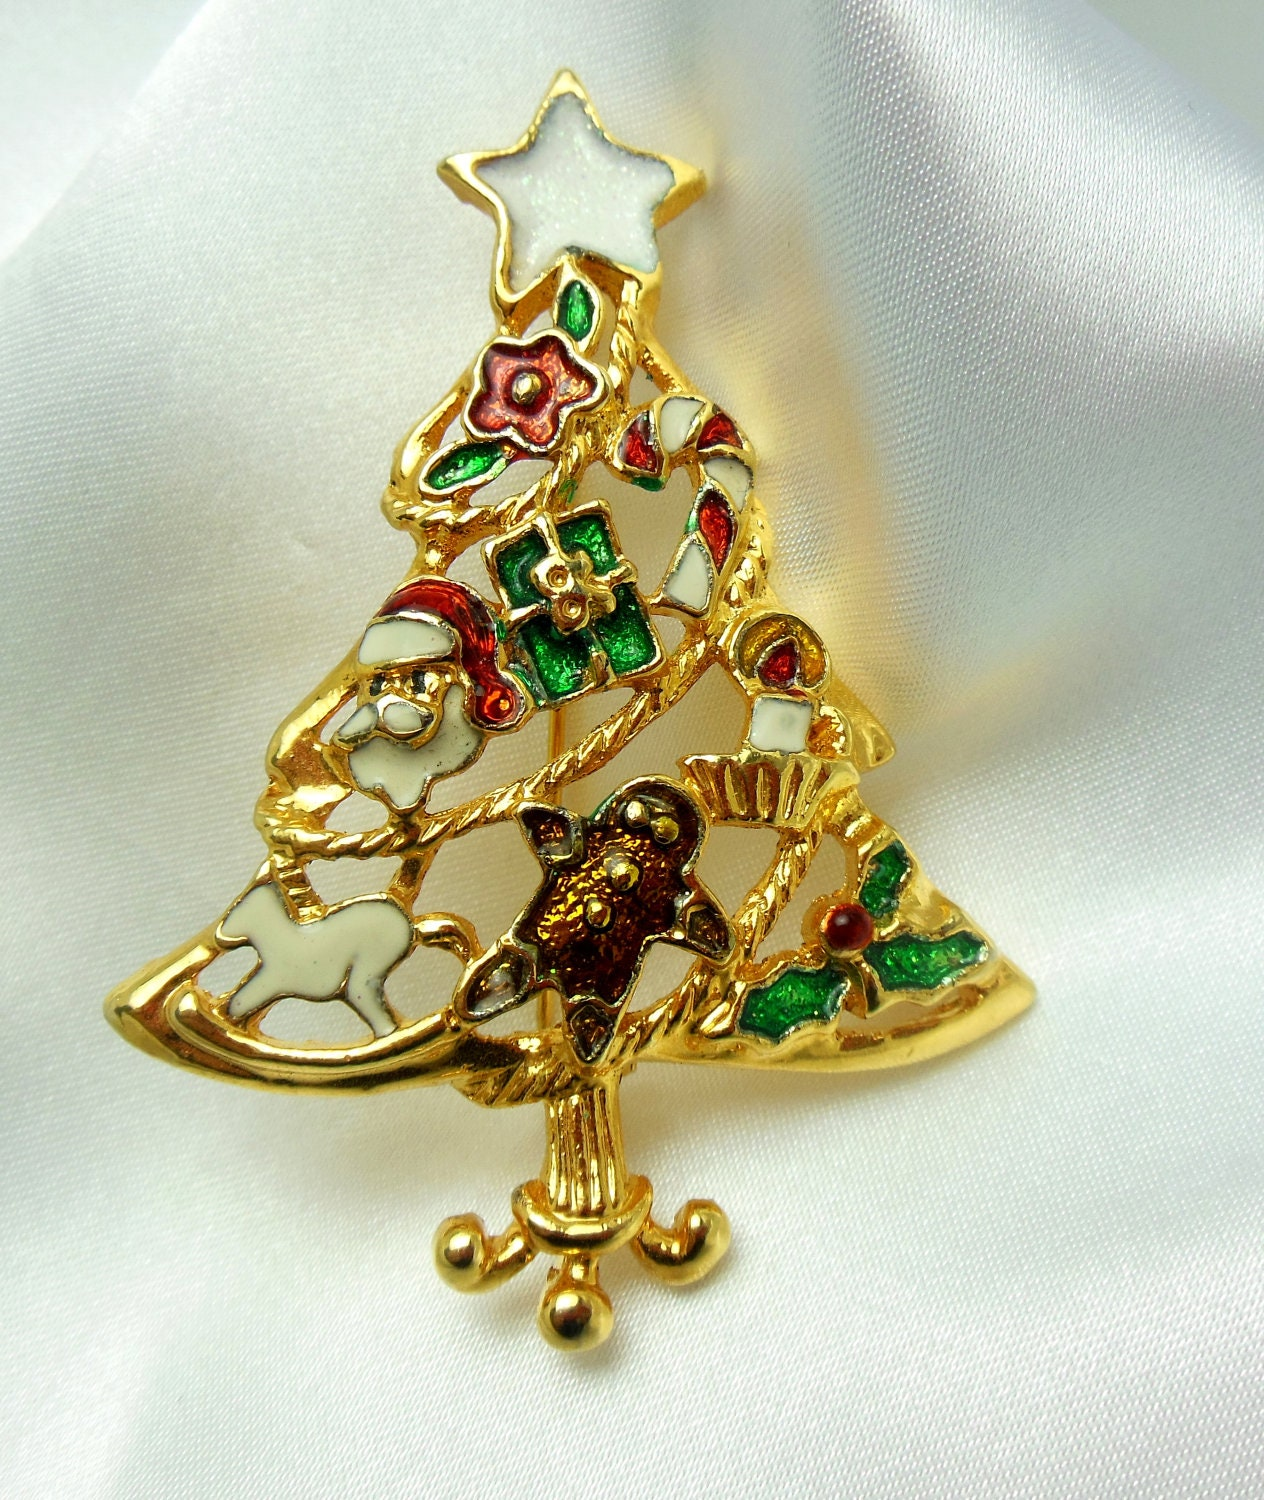 Vintage Christmas Tree Brooch With Toy Decorations